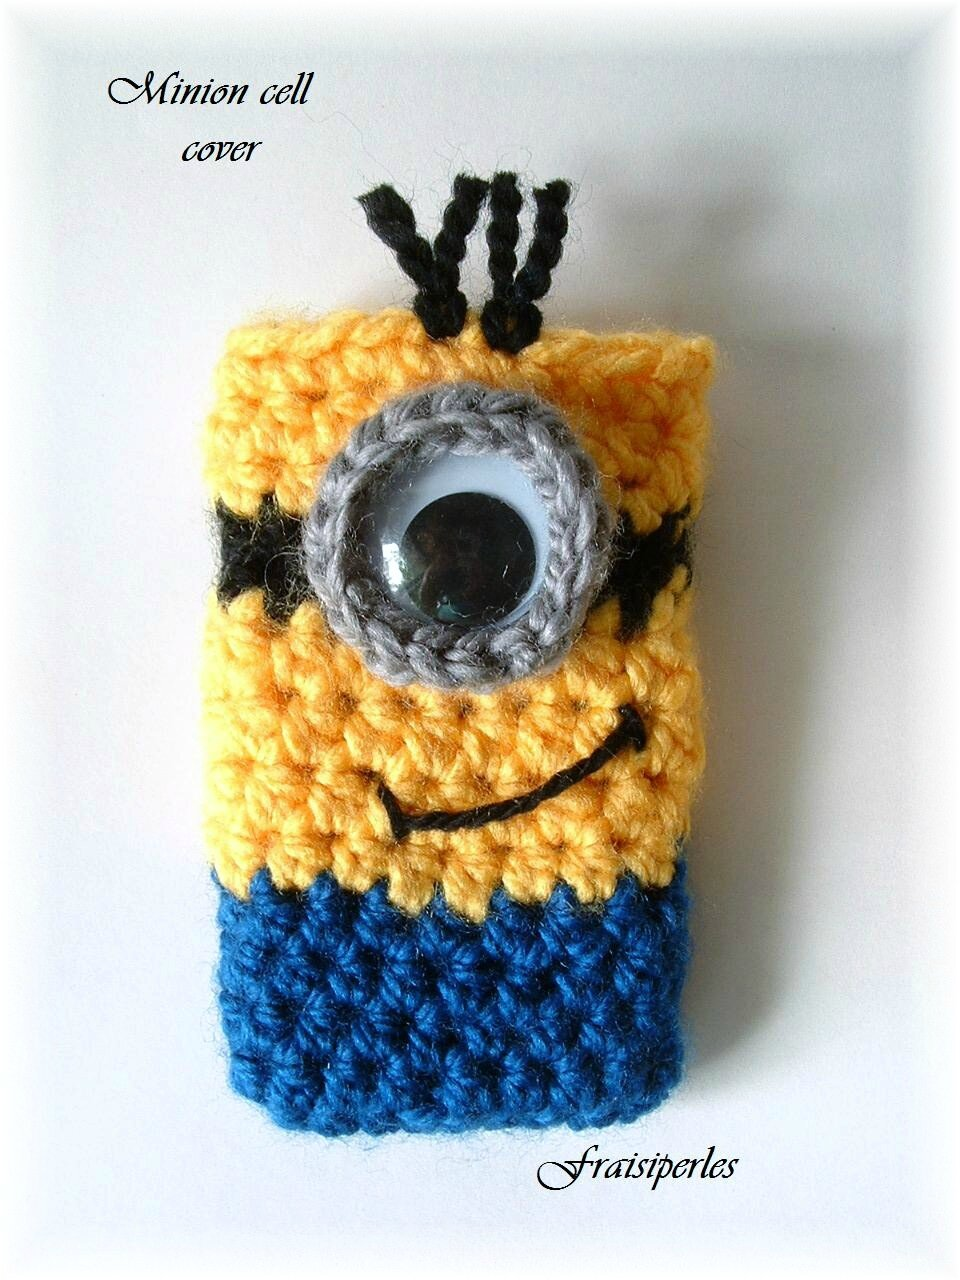 minion cell cover